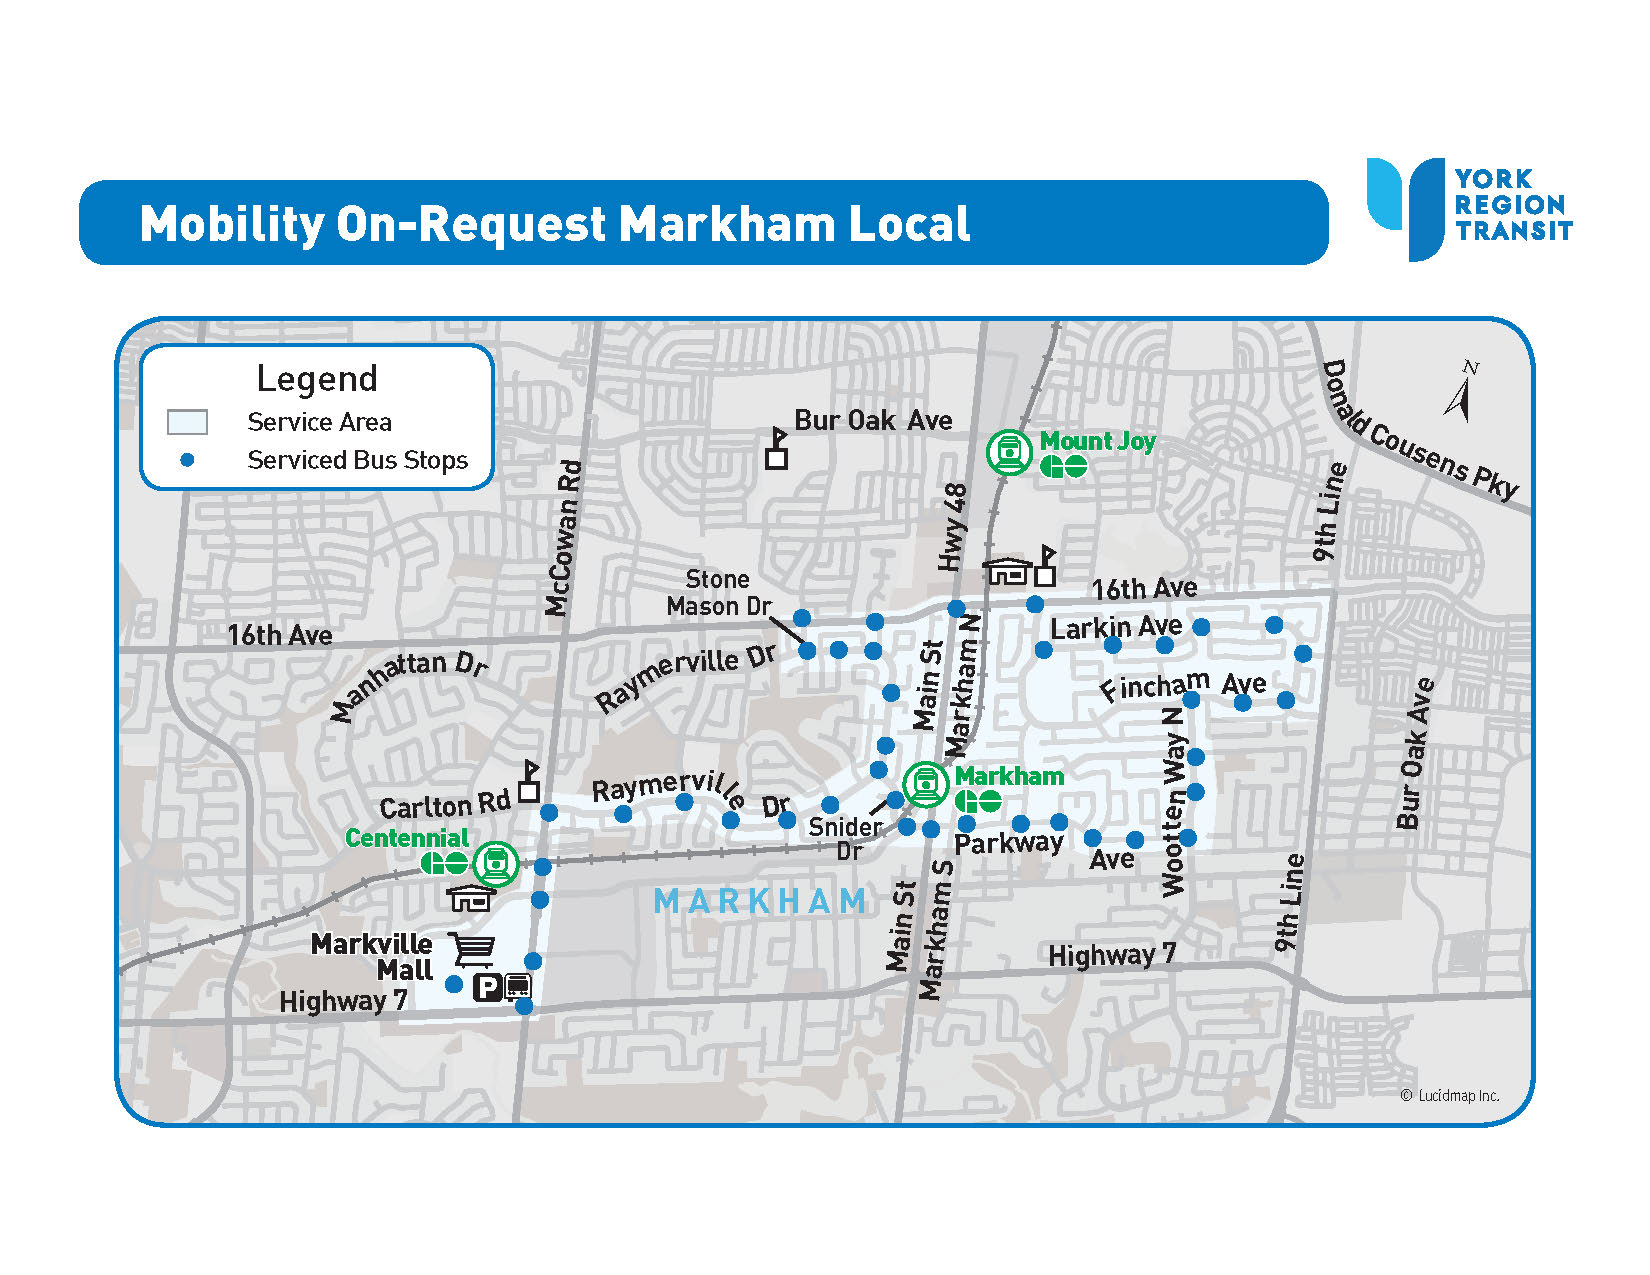 MOR Markham Local service area map